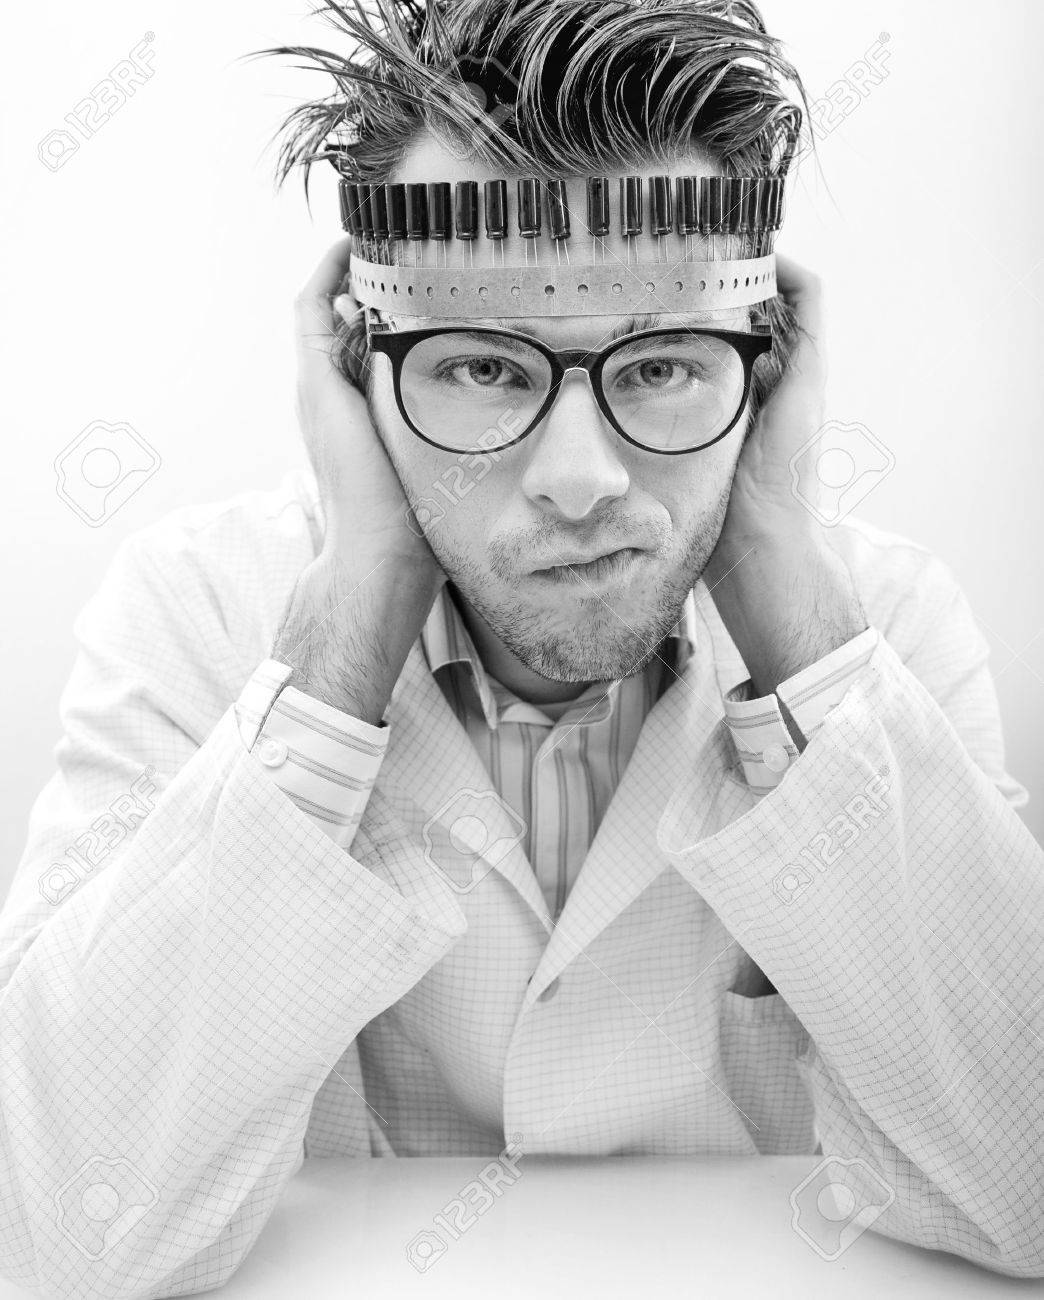 Portrait of a madman scientist Stock Photo - 7079292